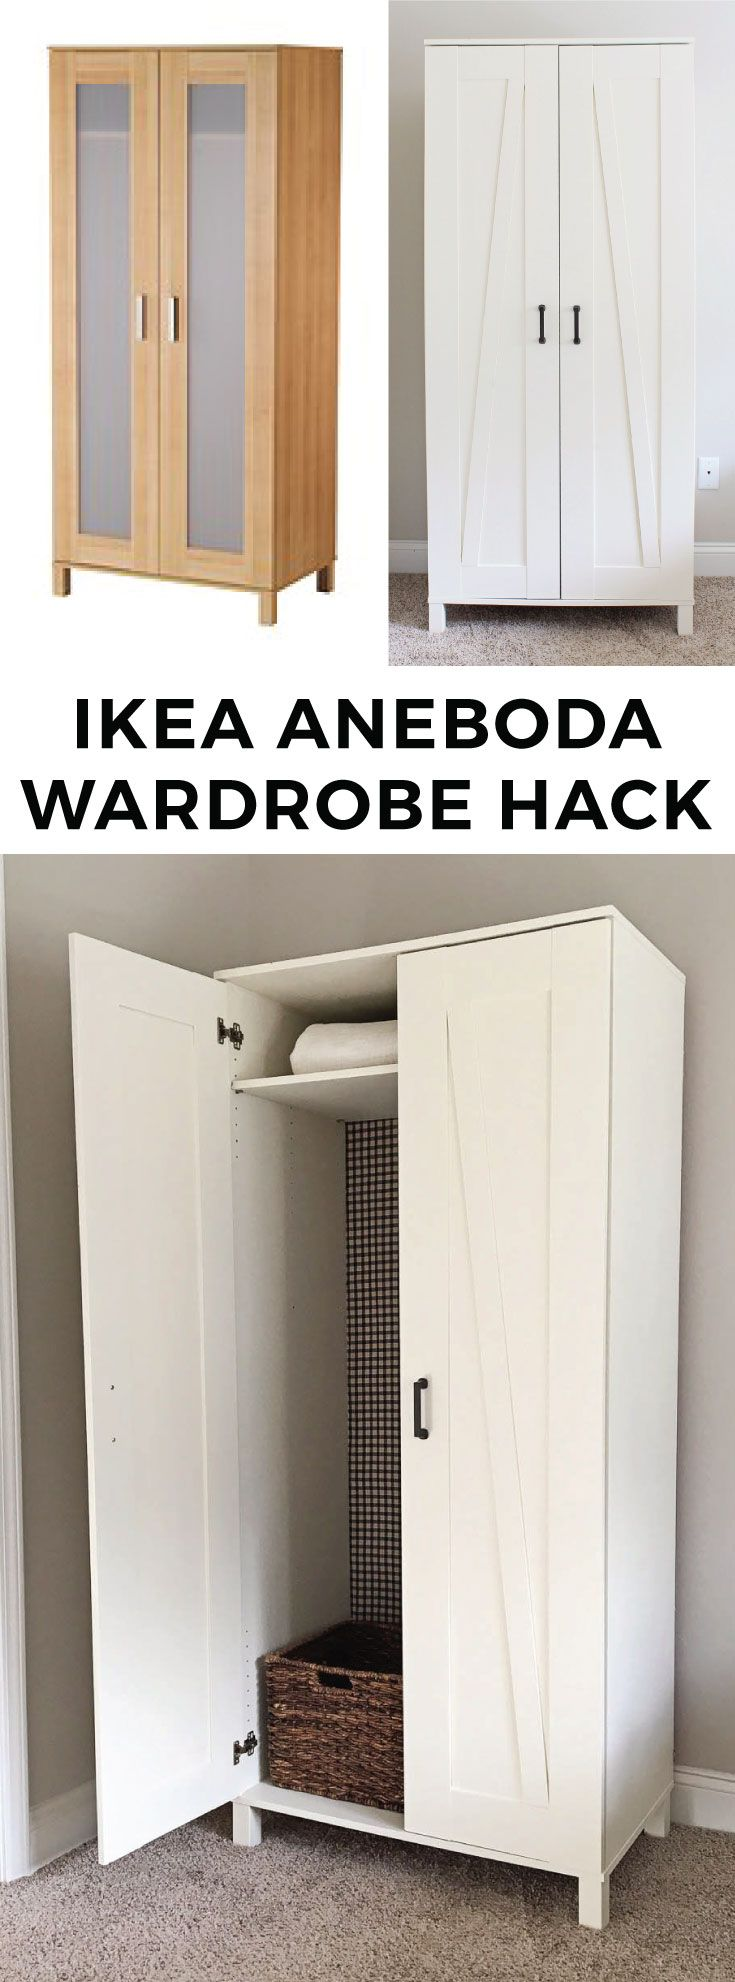 DIY IKEA Hack. Farmhouse style wardrobe from the IKEA Aneboda Wardrobe.